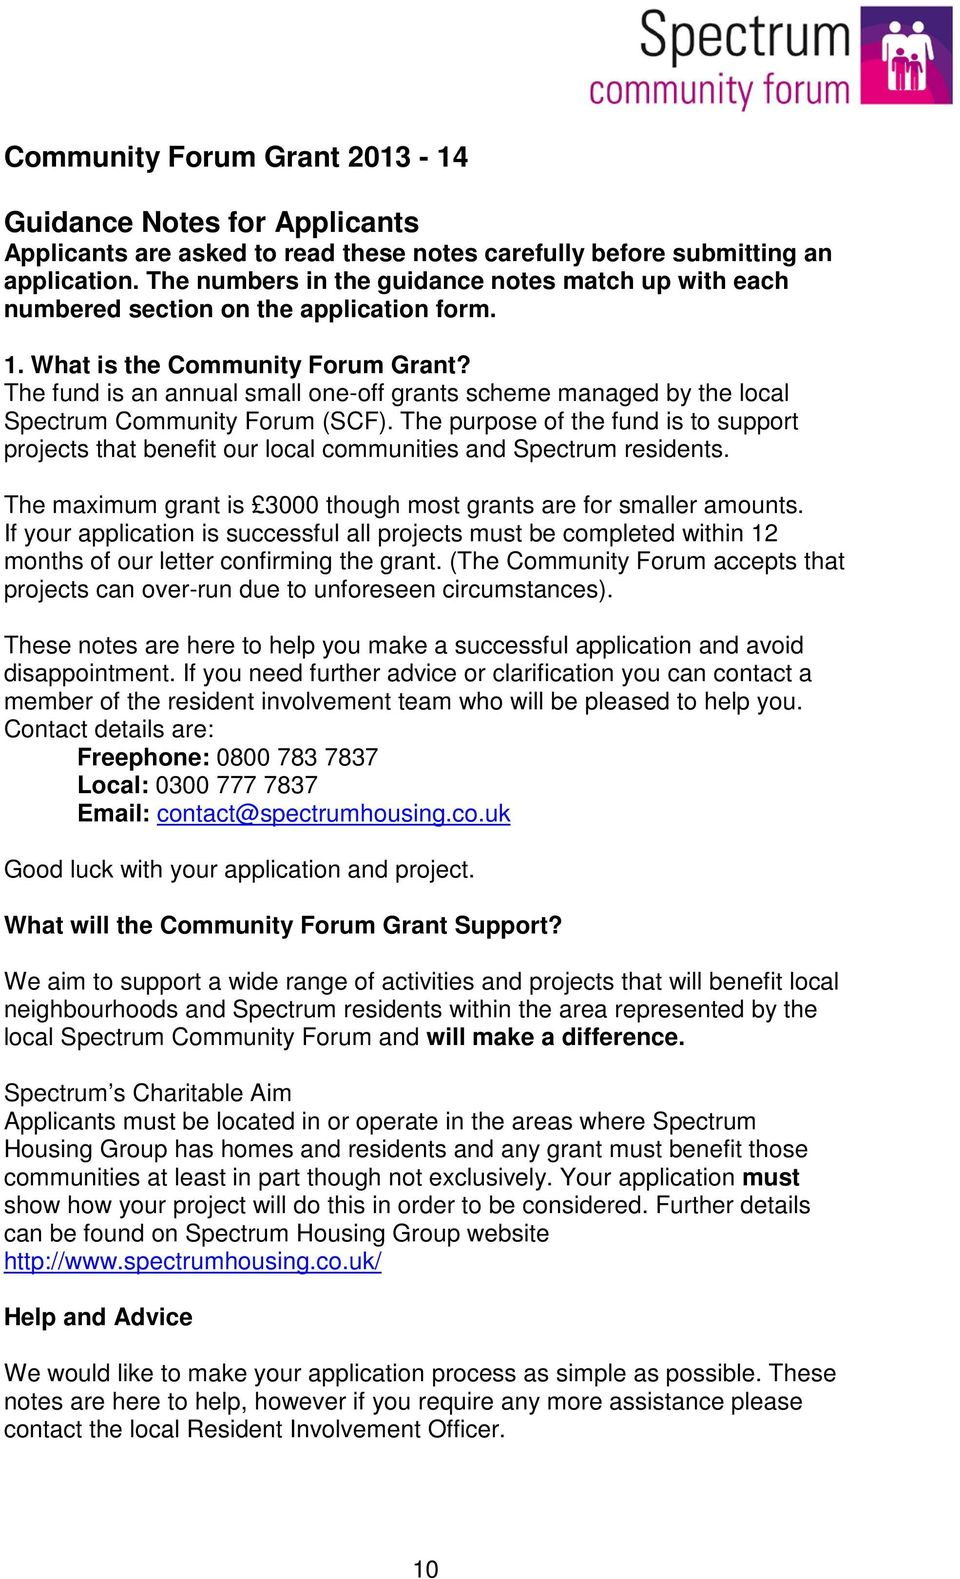 The fund is an annual small one-off grants scheme managed by the local Spectrum Community Forum (SCF).